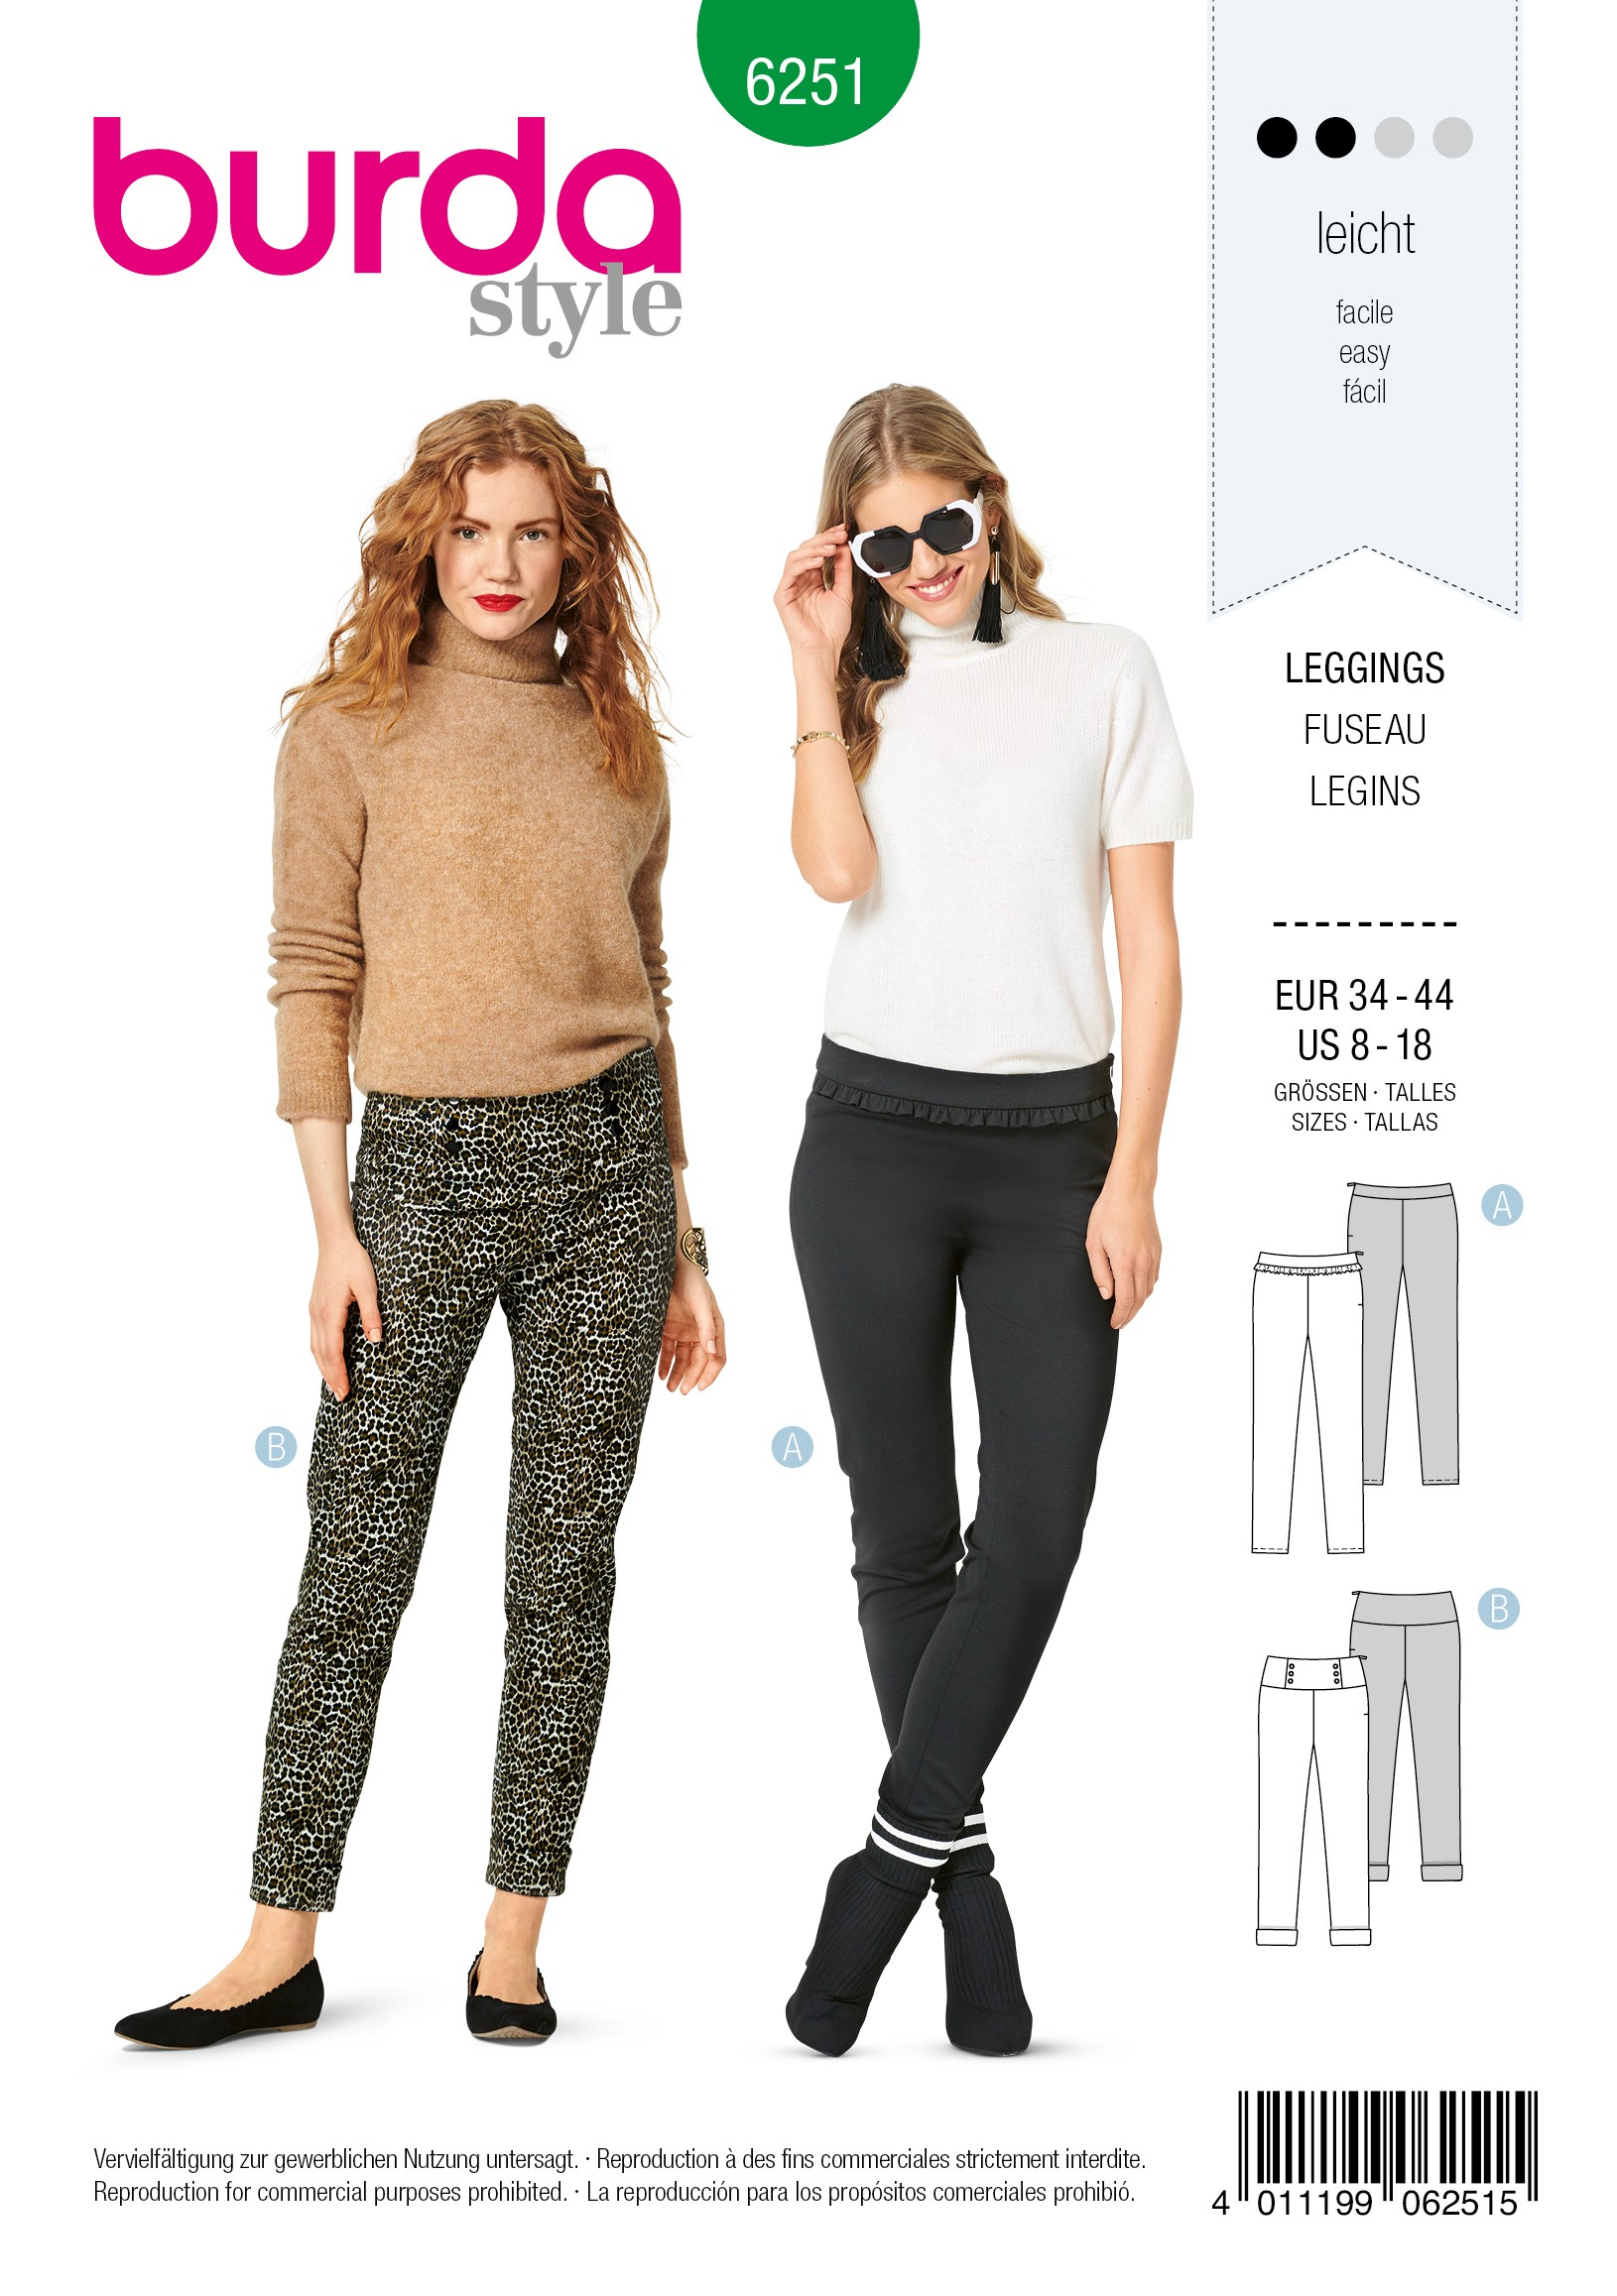 Burda Style Sewing Pattern 6251 Women's Skinny Stretch Trousers Leggings